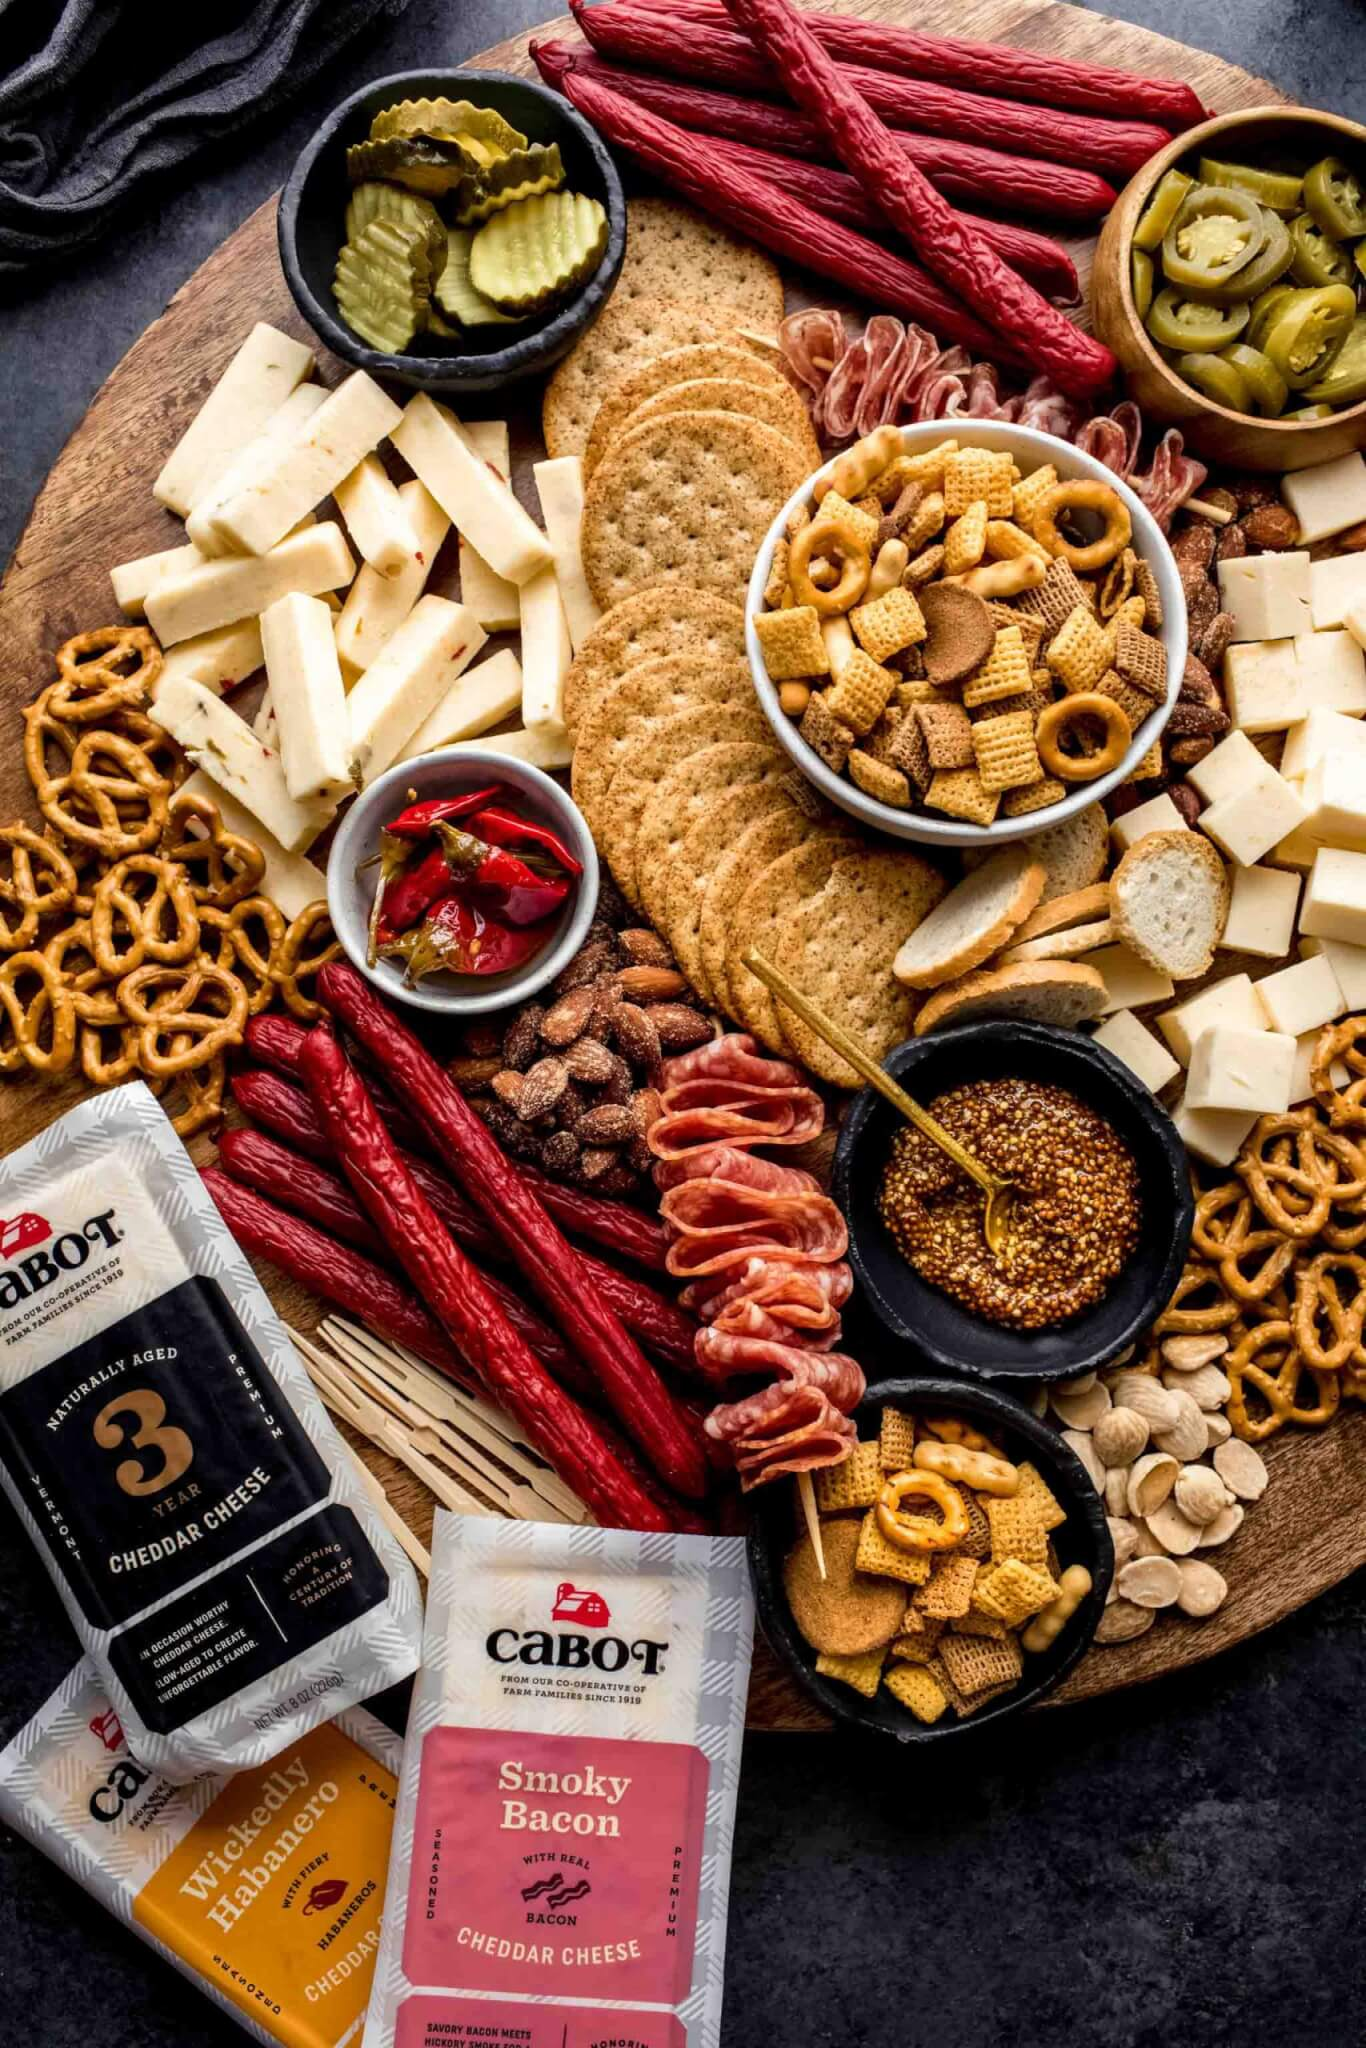 Cheeses next to game day board.